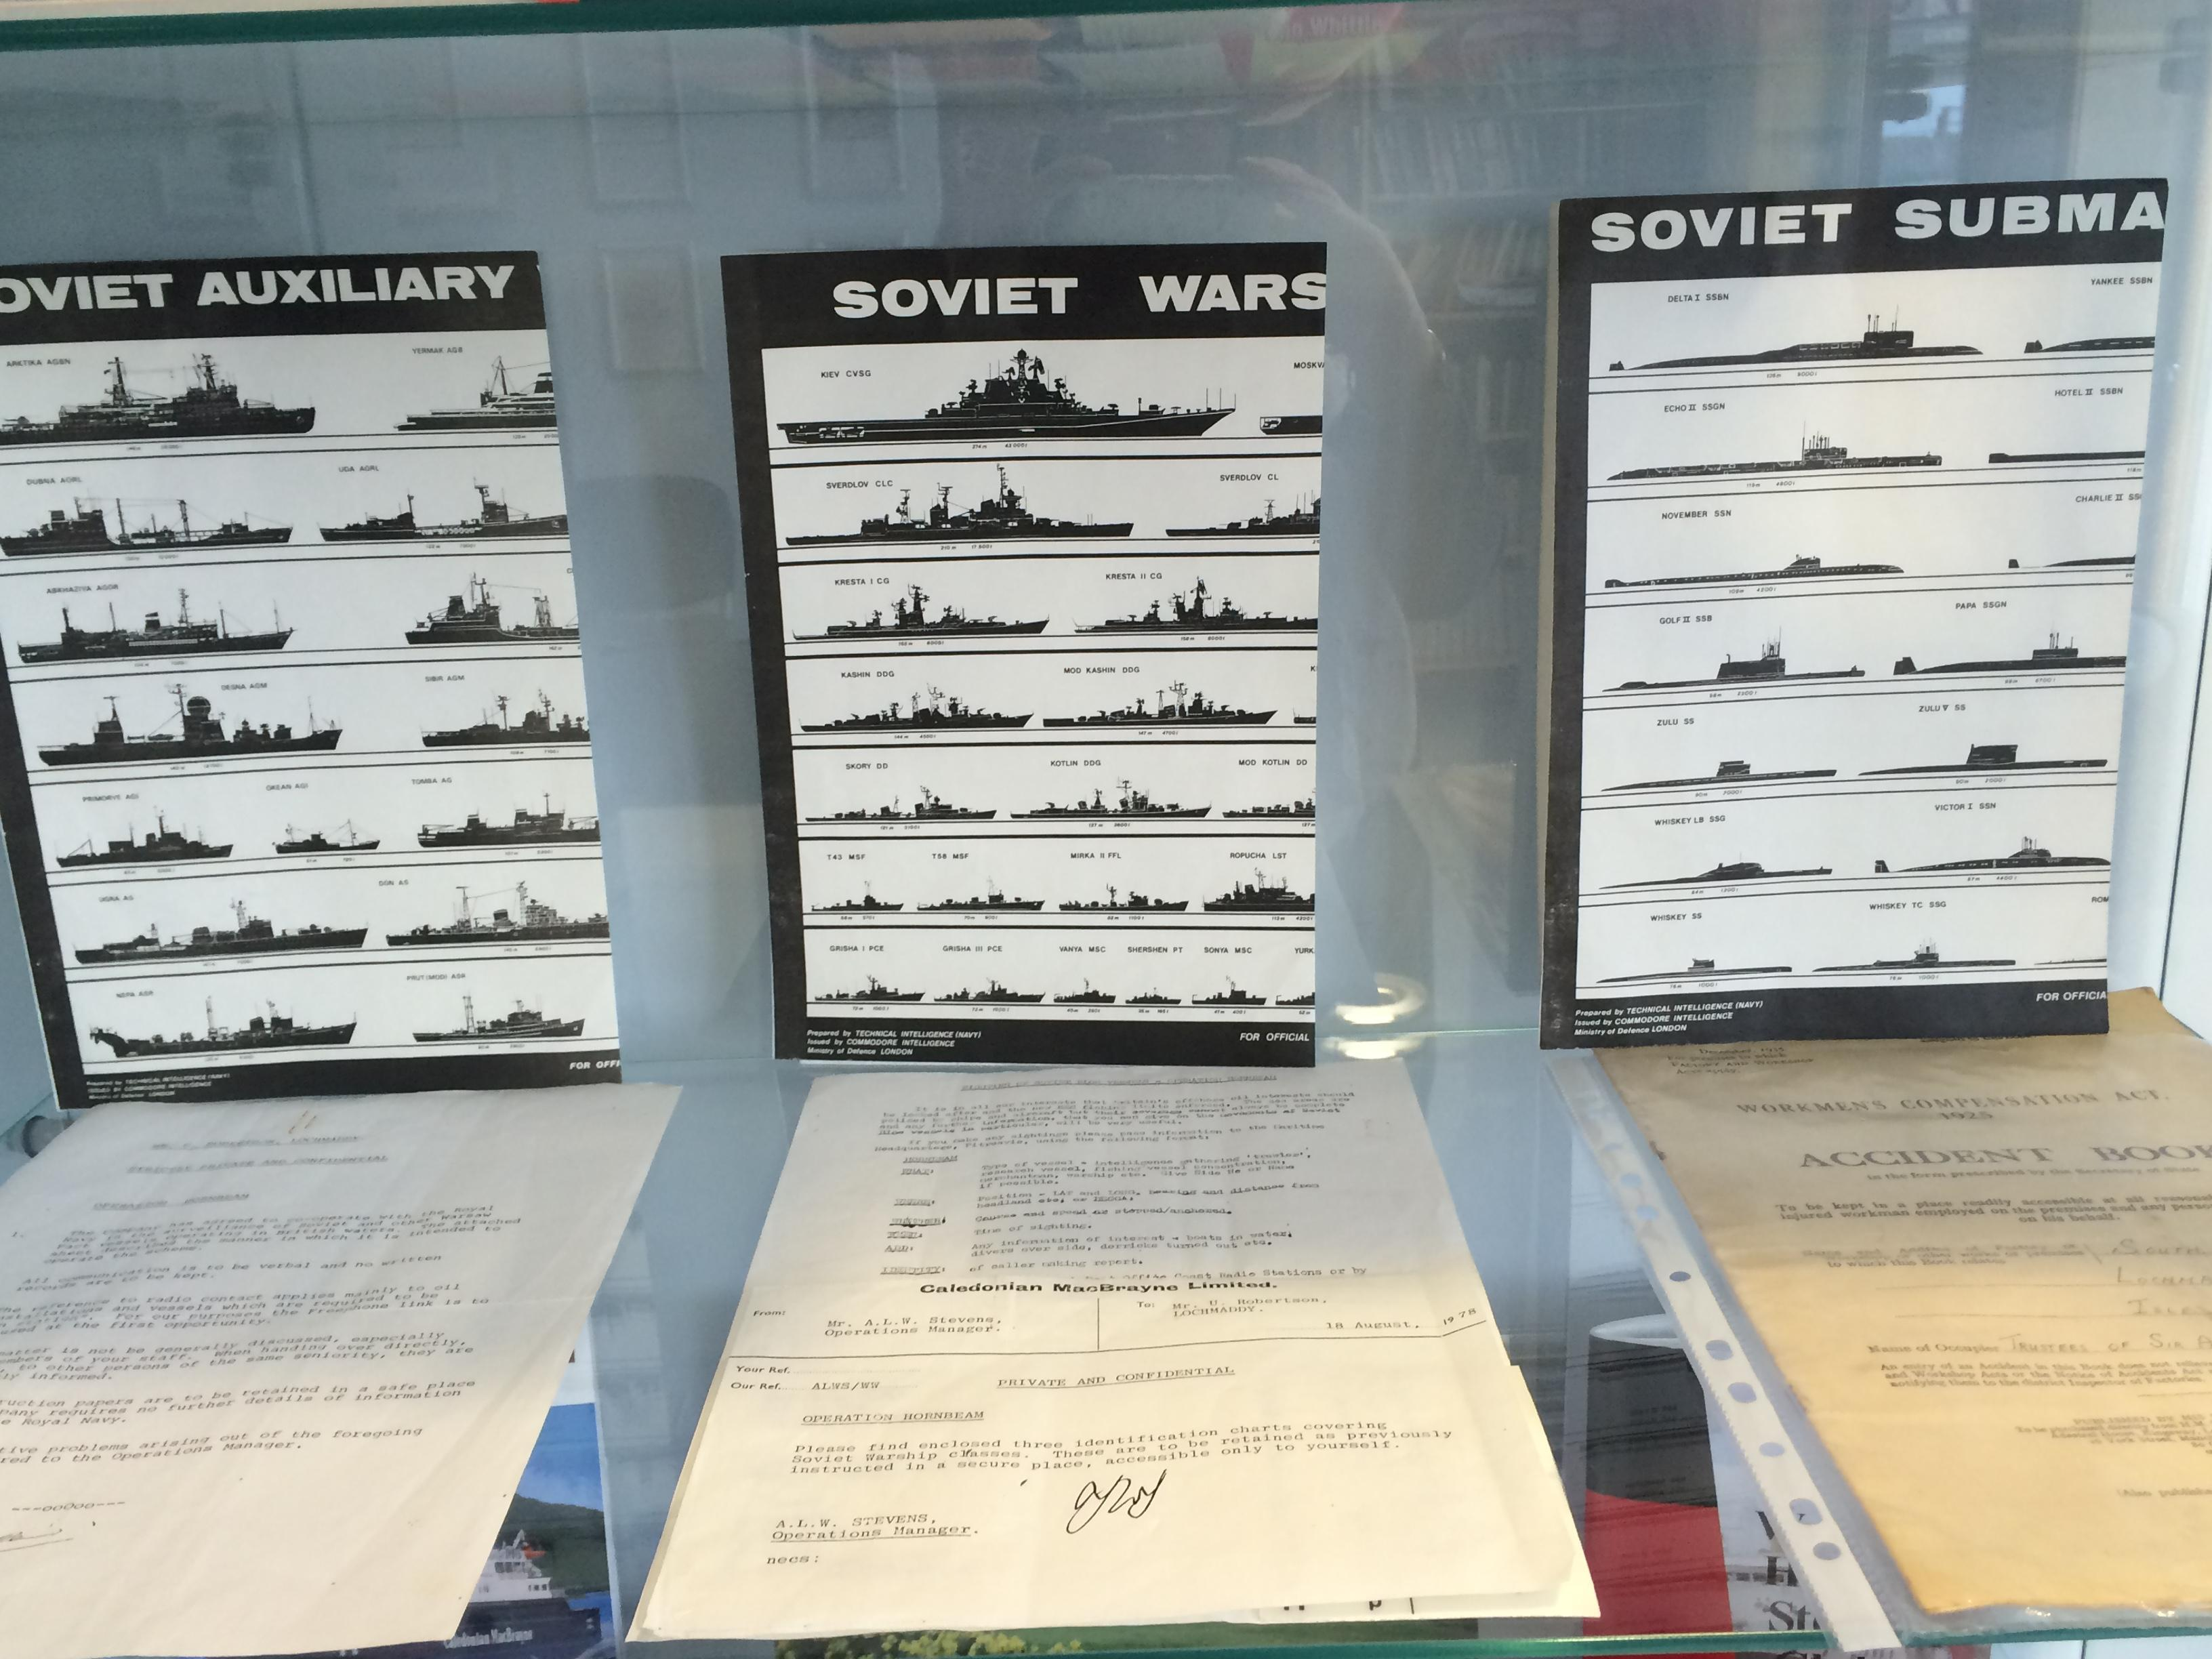 Display of identification charts for Russian ships and submarines from the Cold War